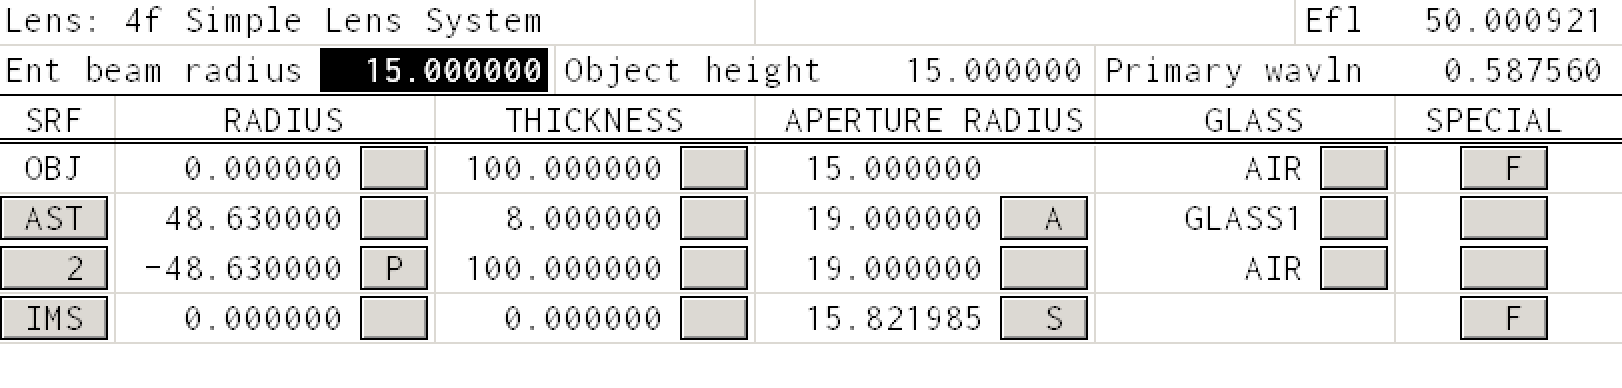 data with height